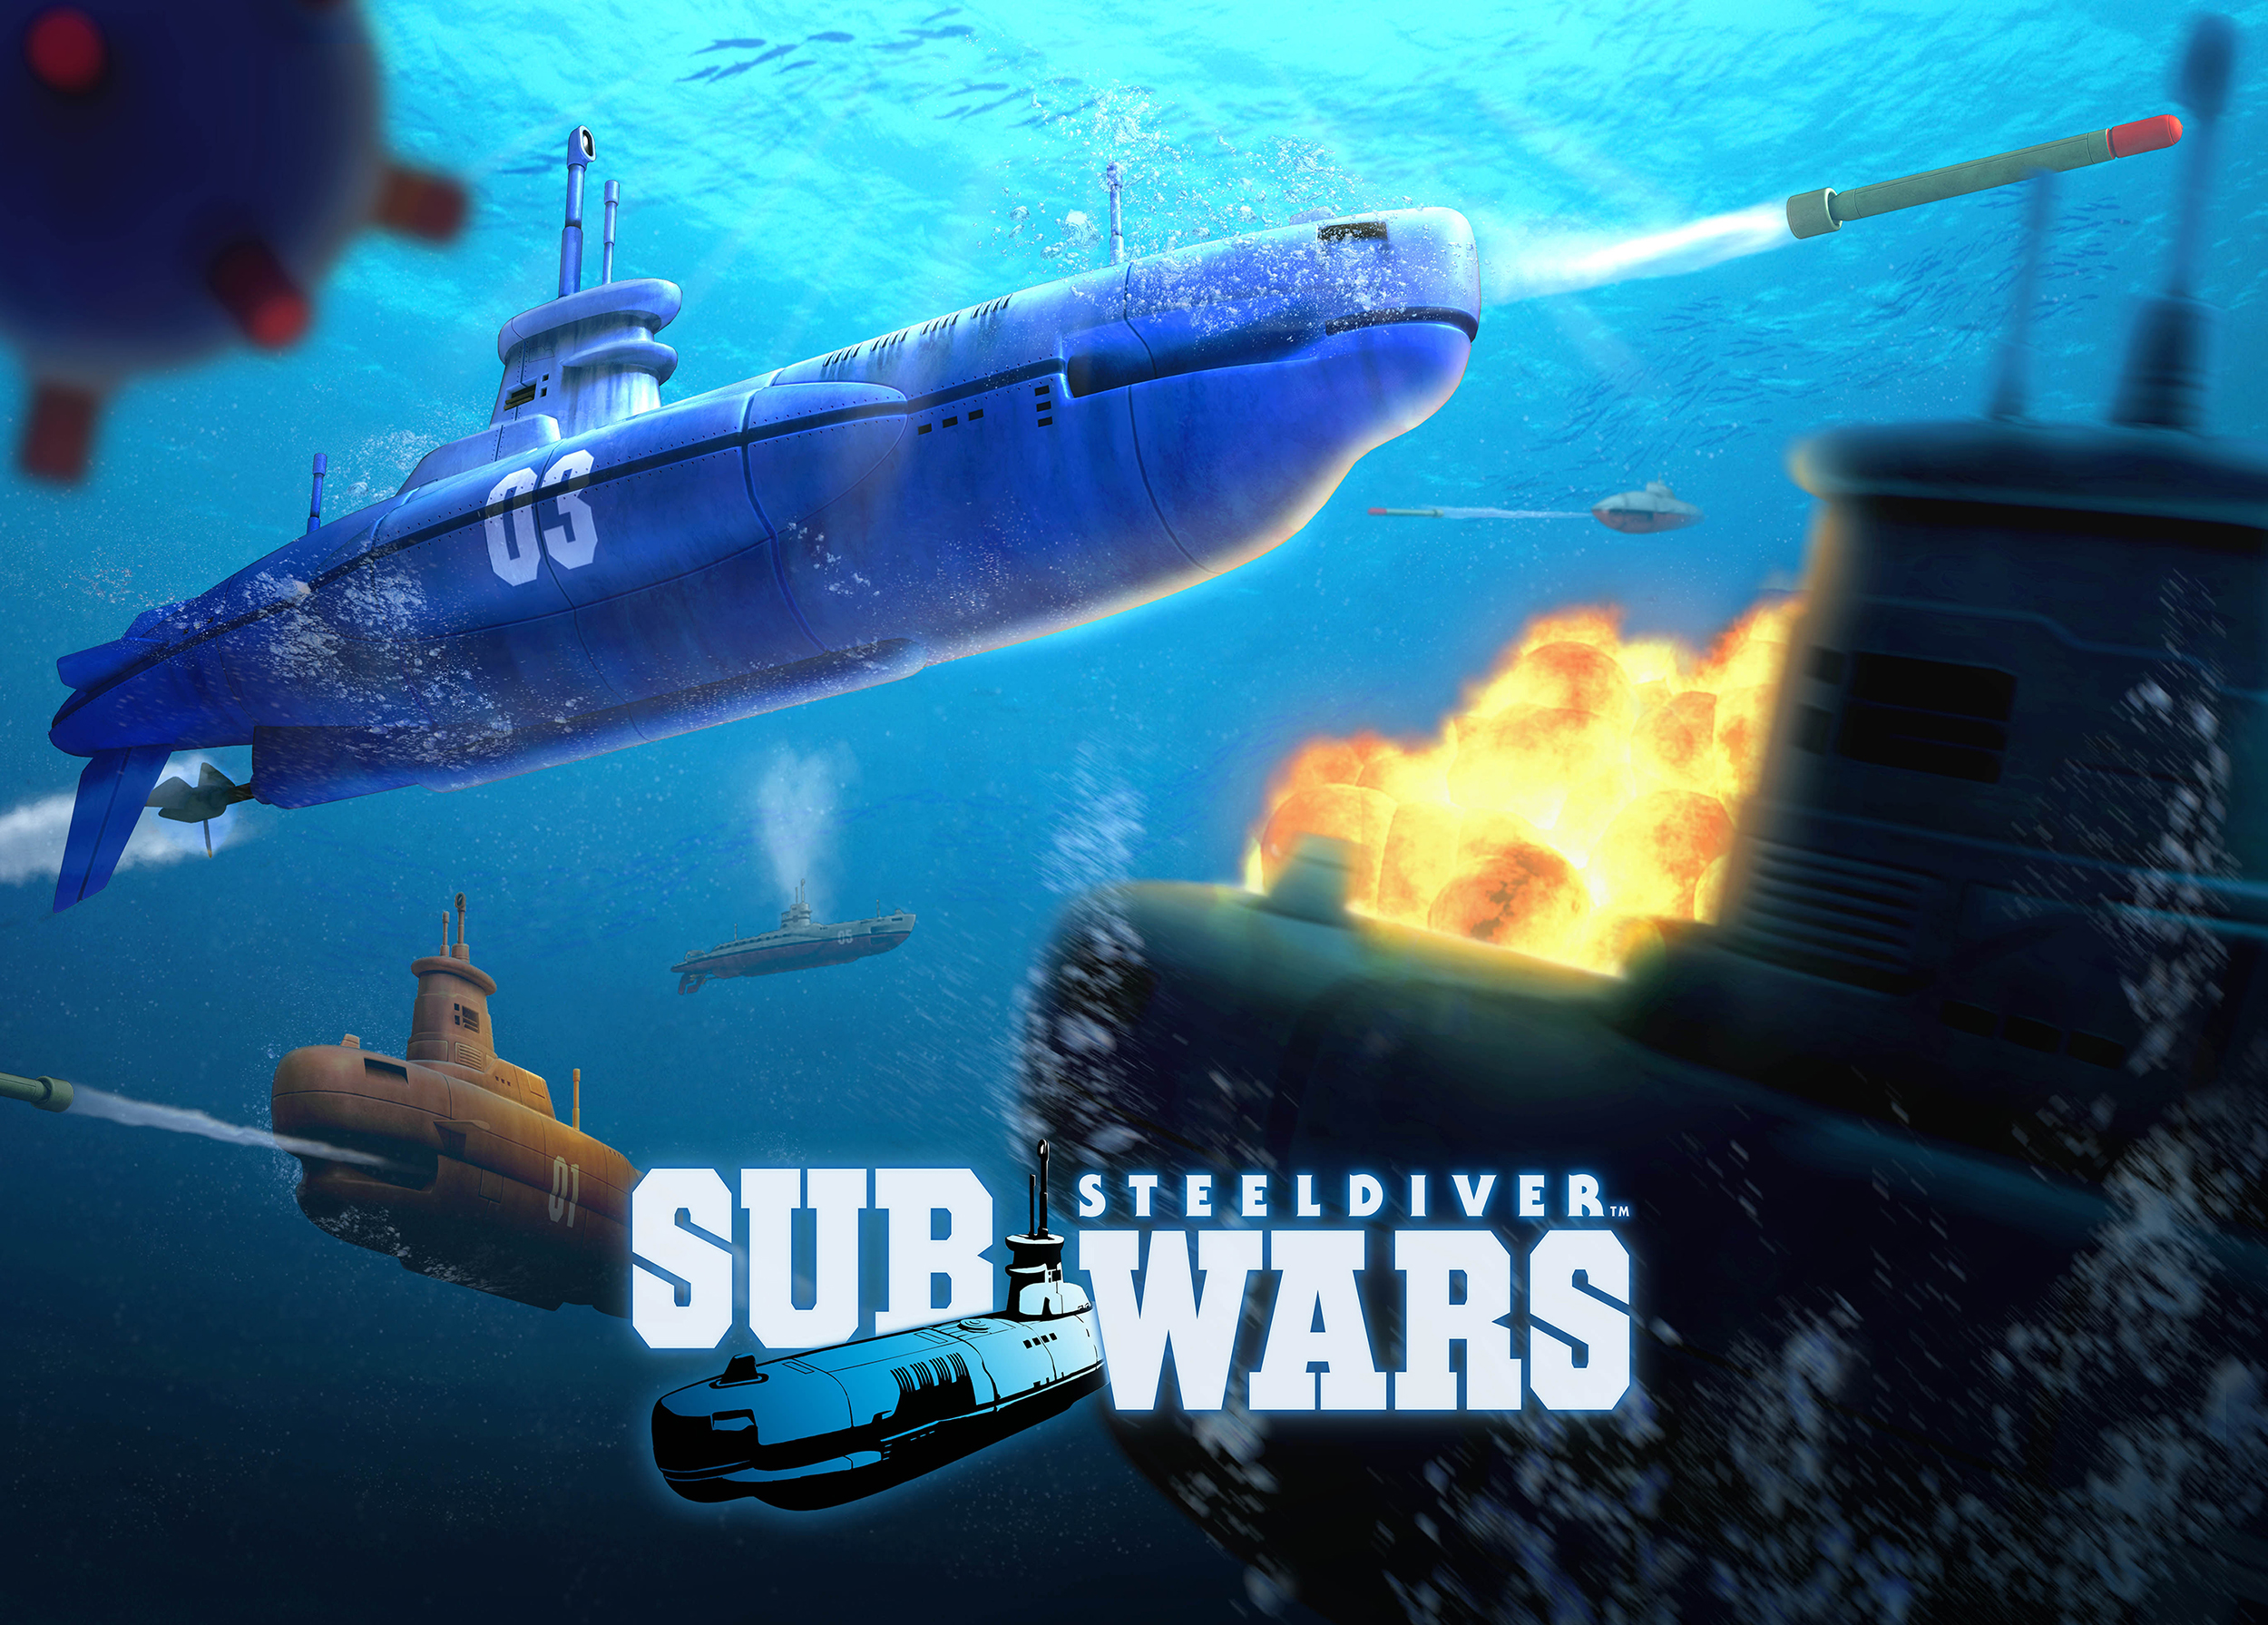 steel-diver-sub-wars 3ds 1402